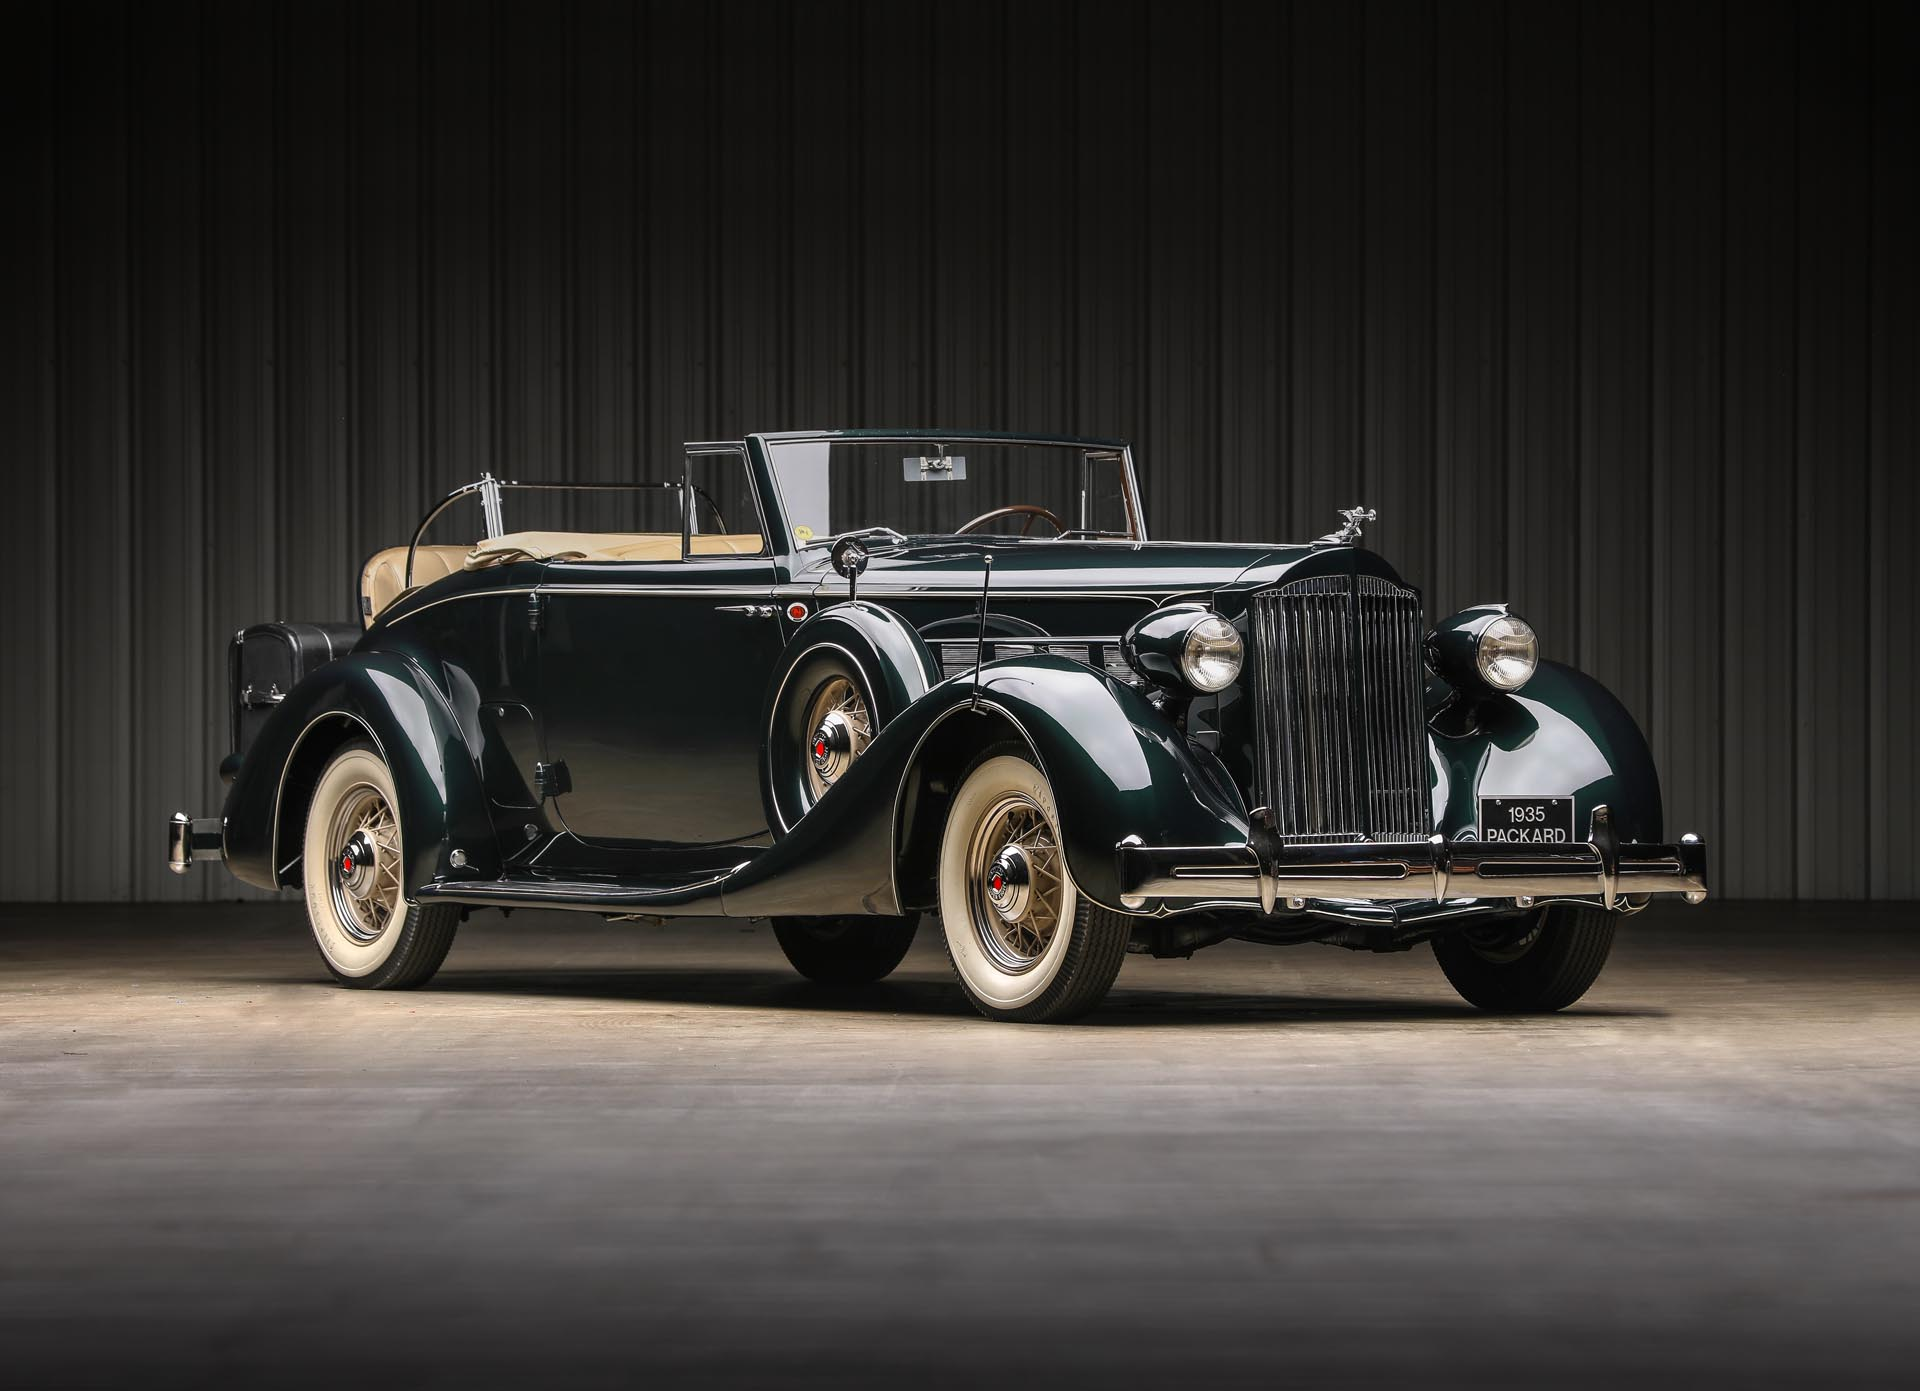 1935 Packard 1204 Super Eight Coupe Roadster